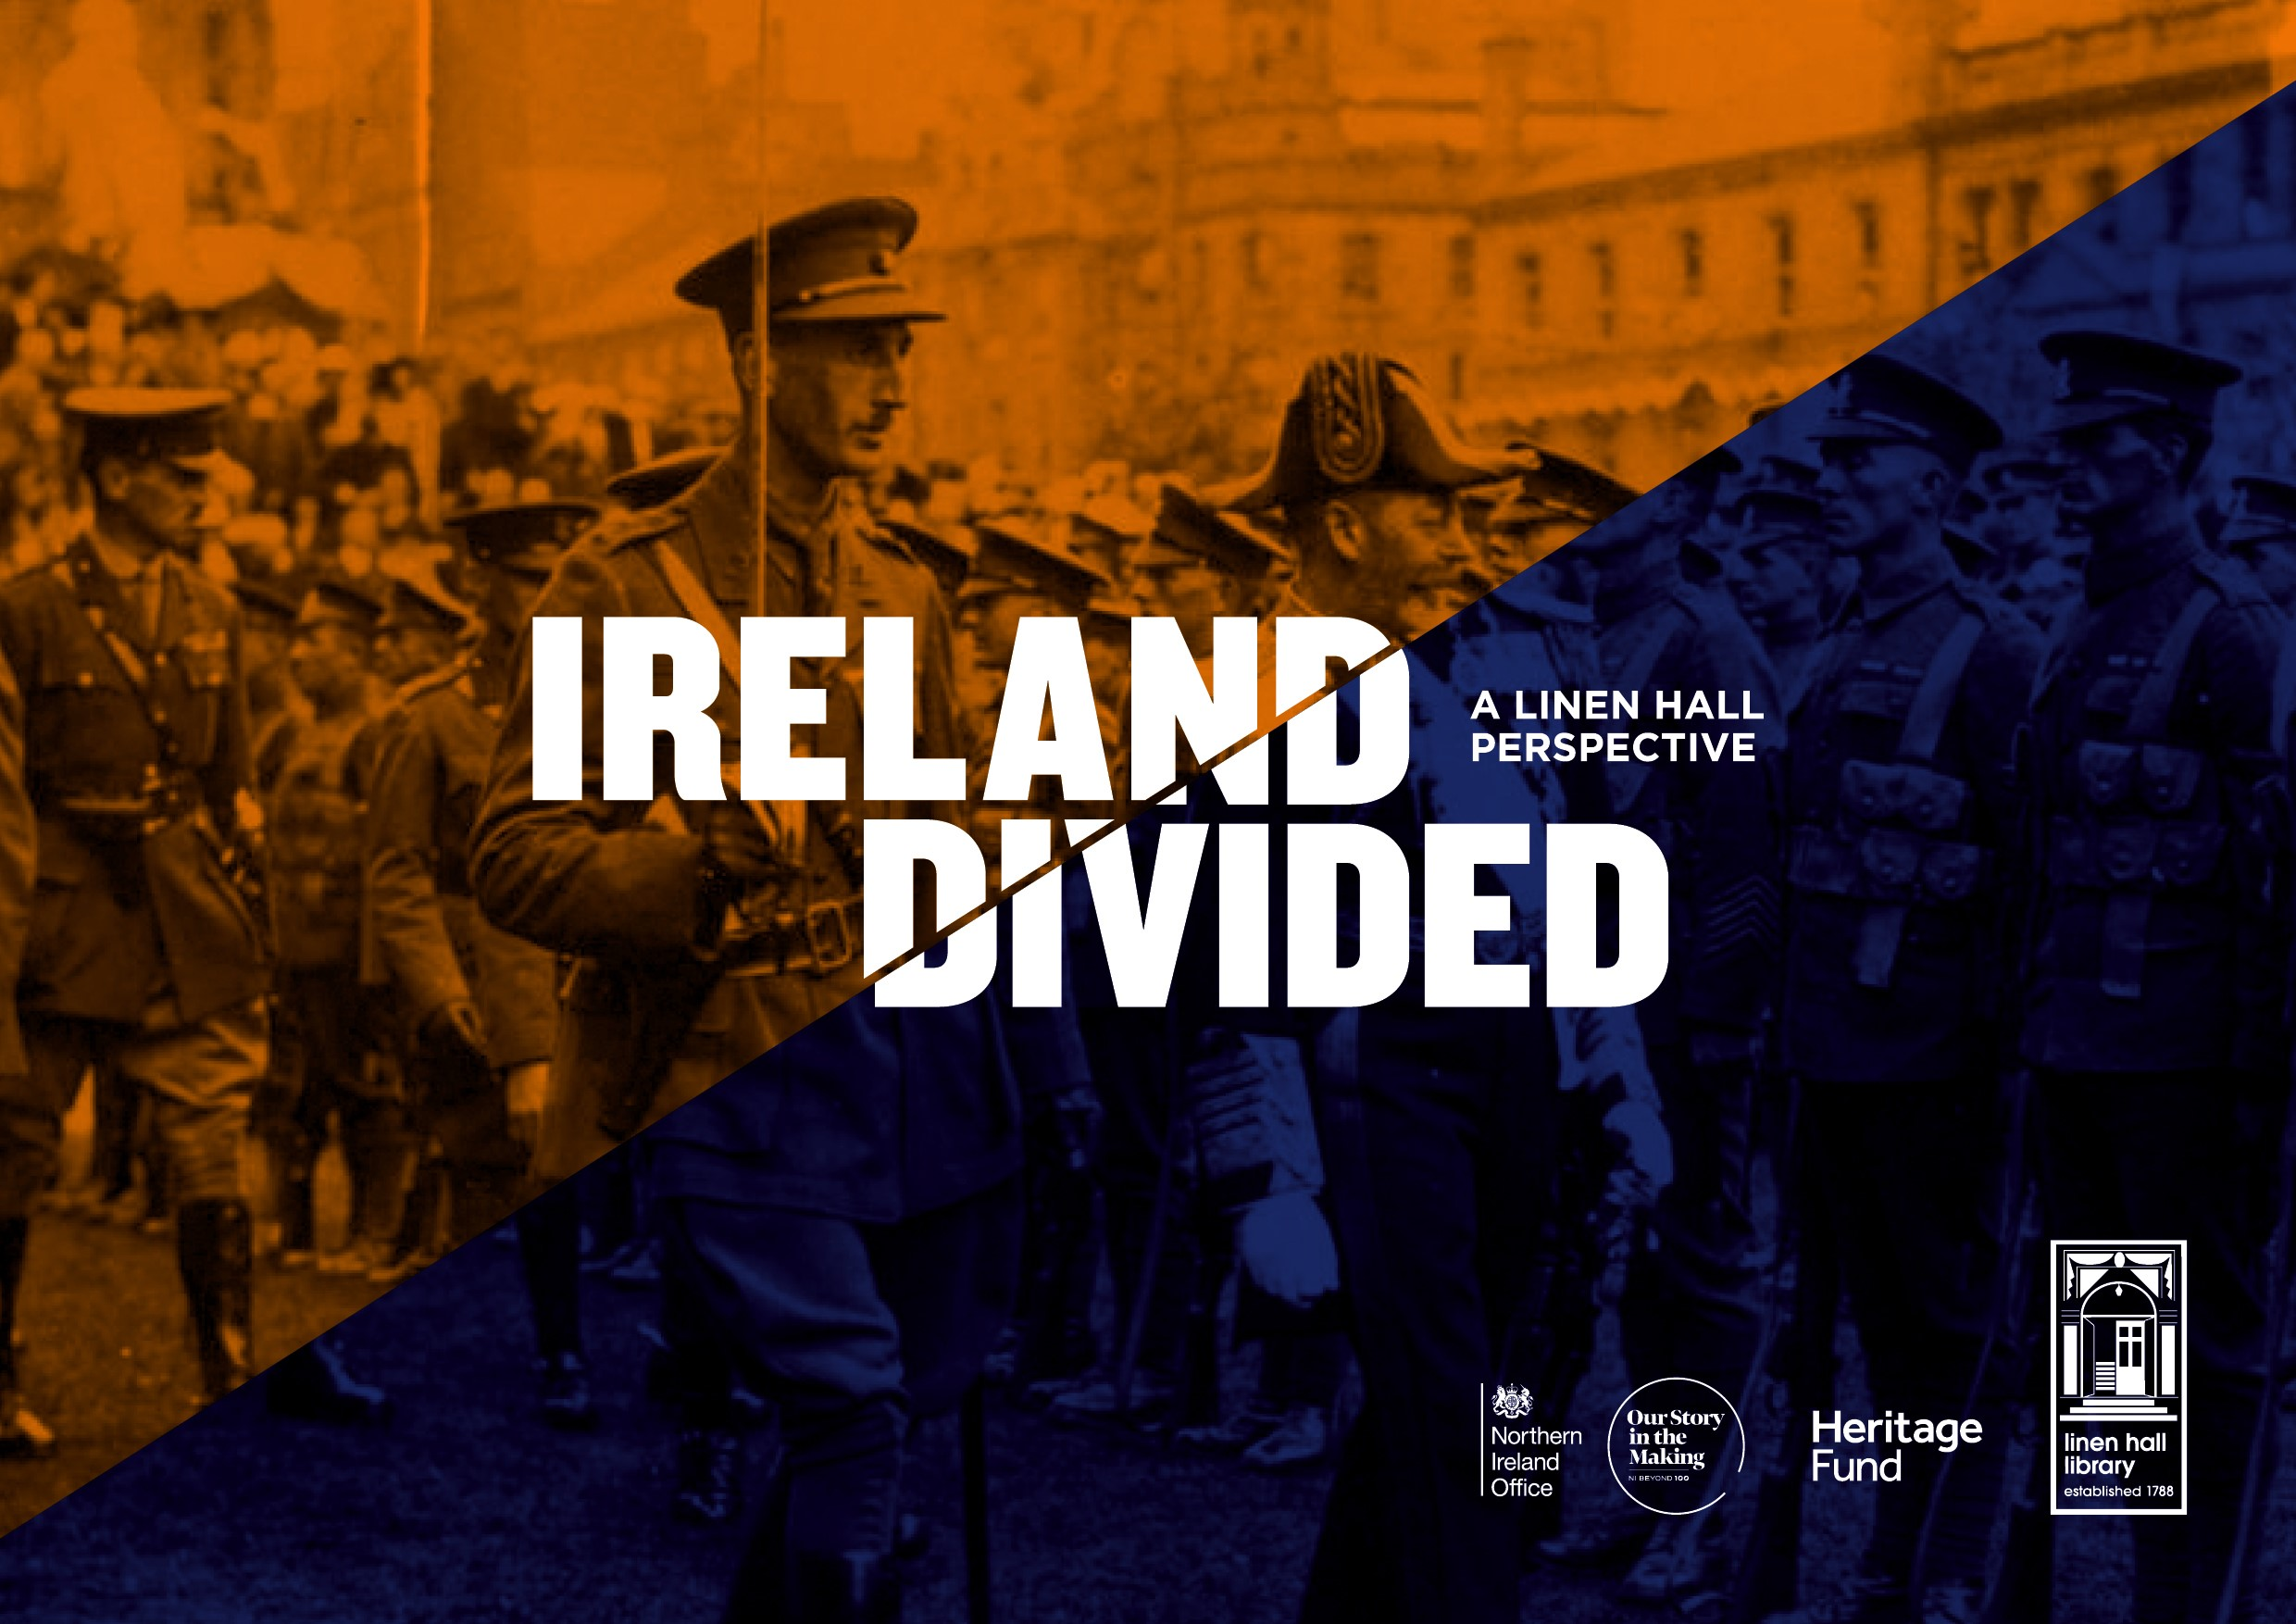 EXHIBITION: Ireland Divided - A Linen Hall Perspective